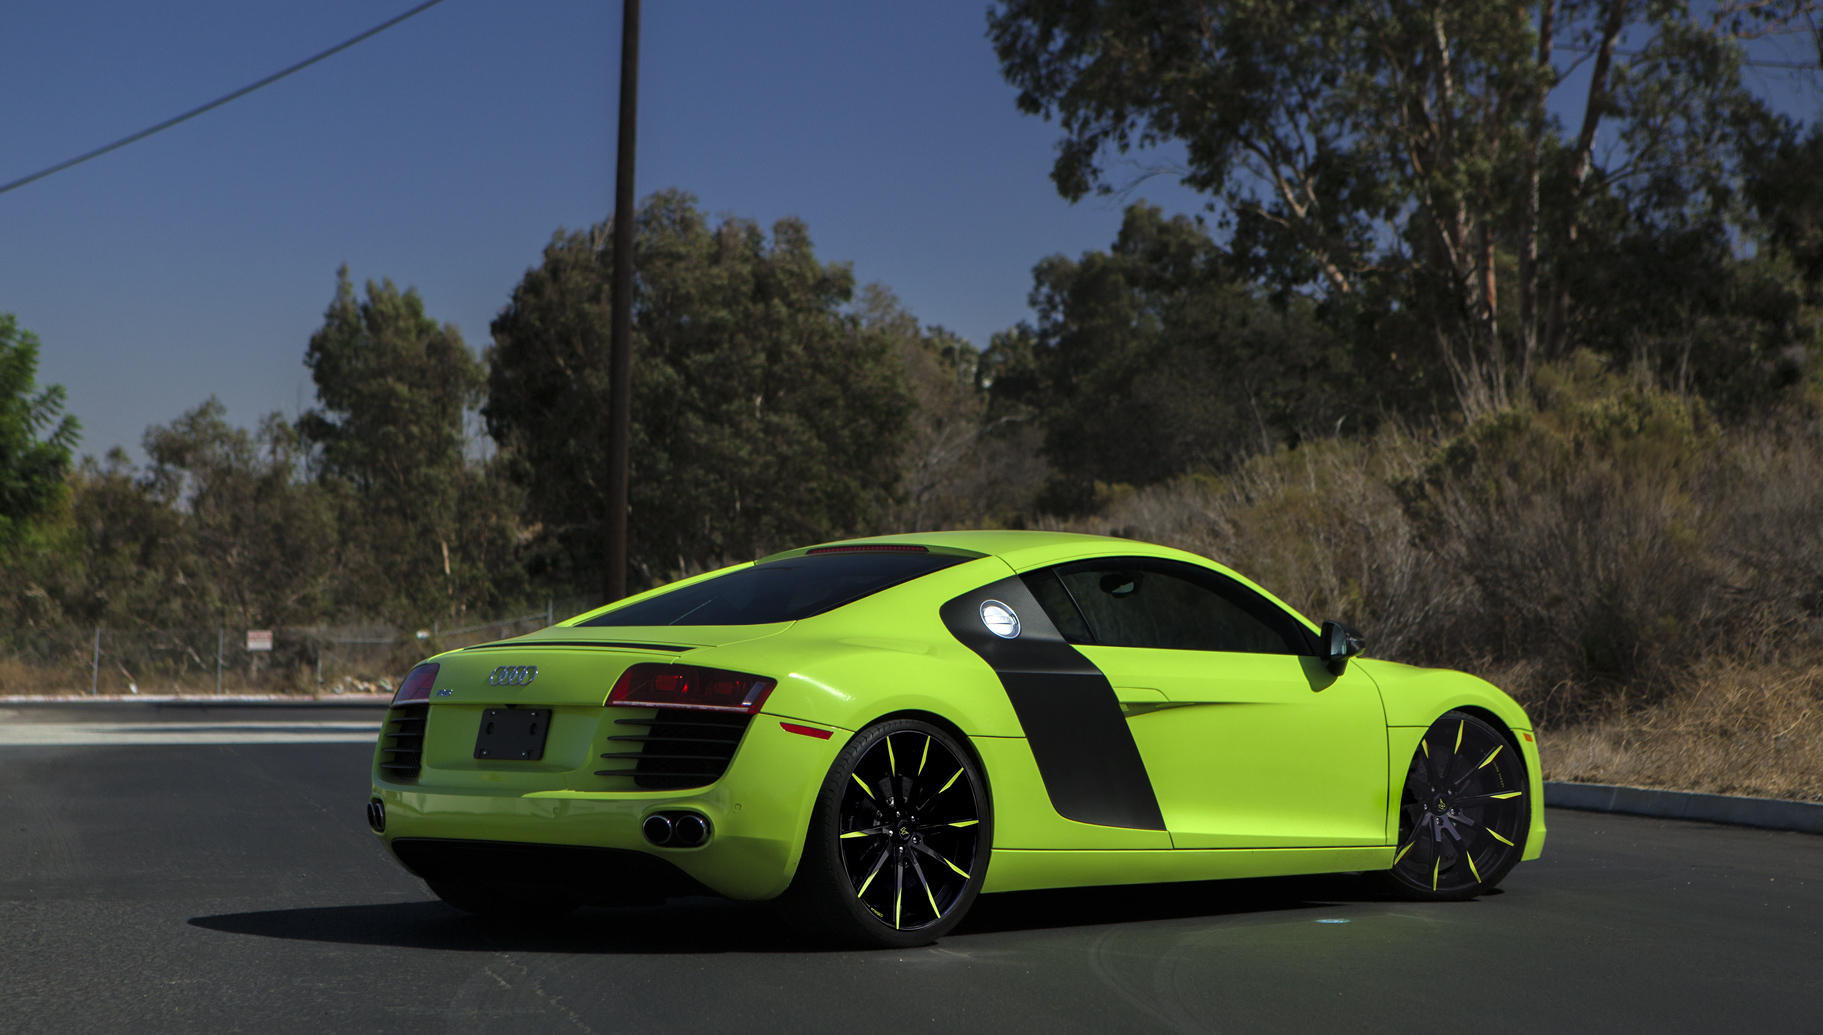 Custom LZ-101 on the Audi R8.